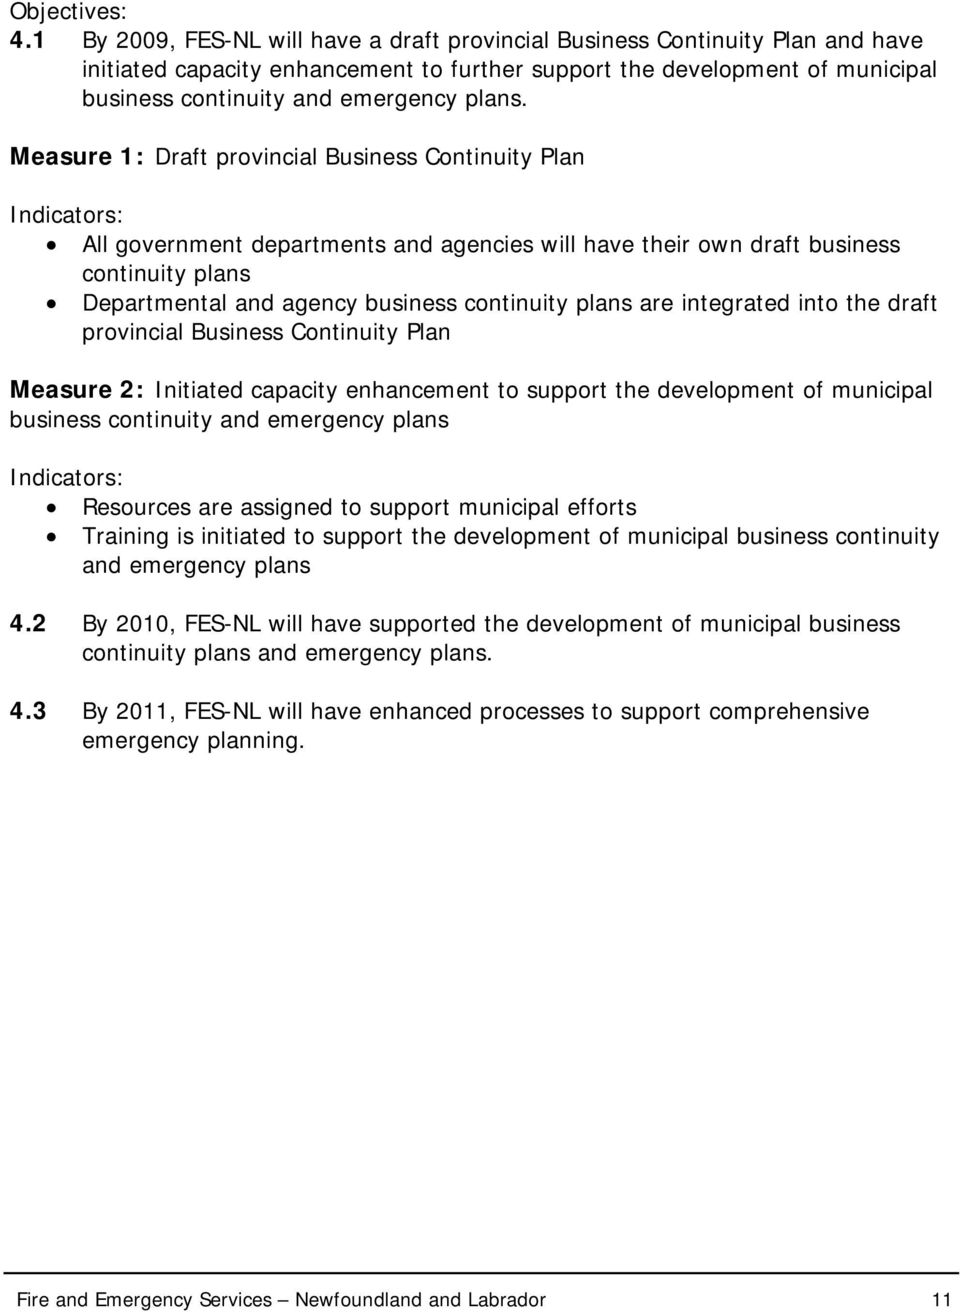 Measure 1: Draft provincial Business Continuity Plan All government departments and agencies will have their own draft business continuity plans Departmental and agency business continuity plans are